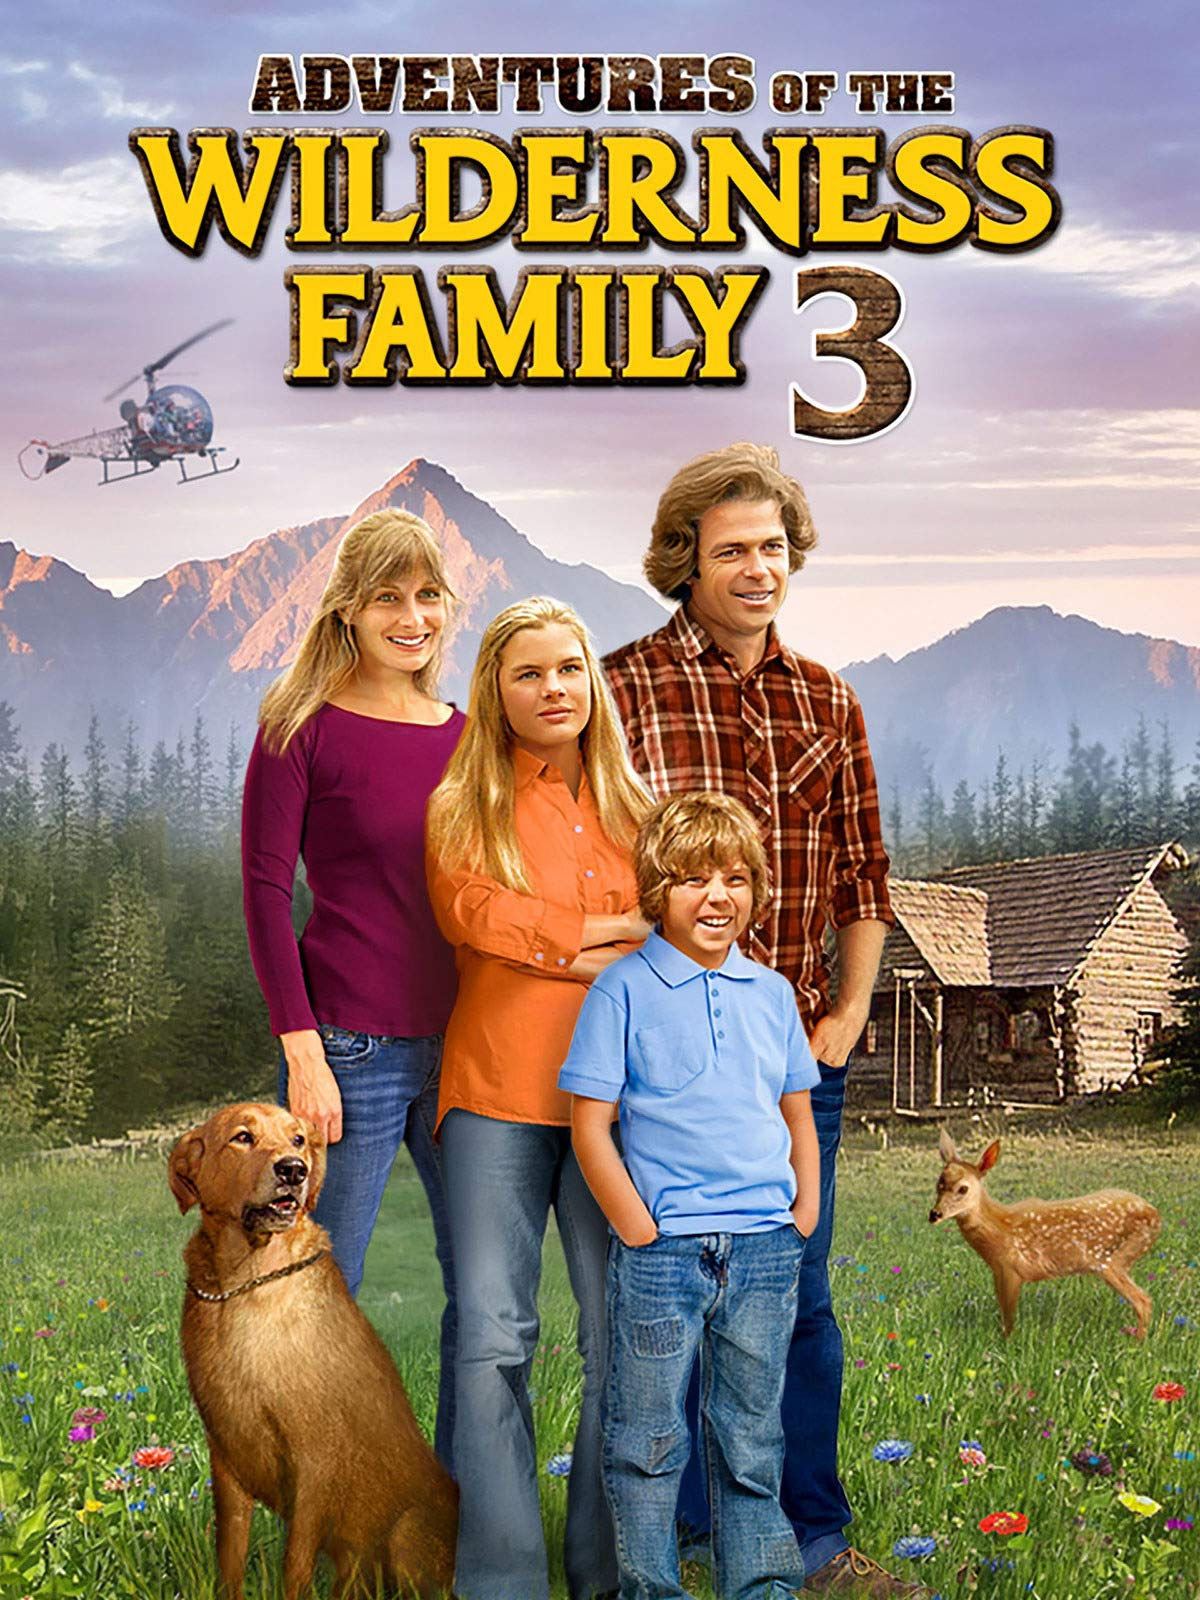 Adventures of the Wilderness Family 3 on Amazon Prime Video UK